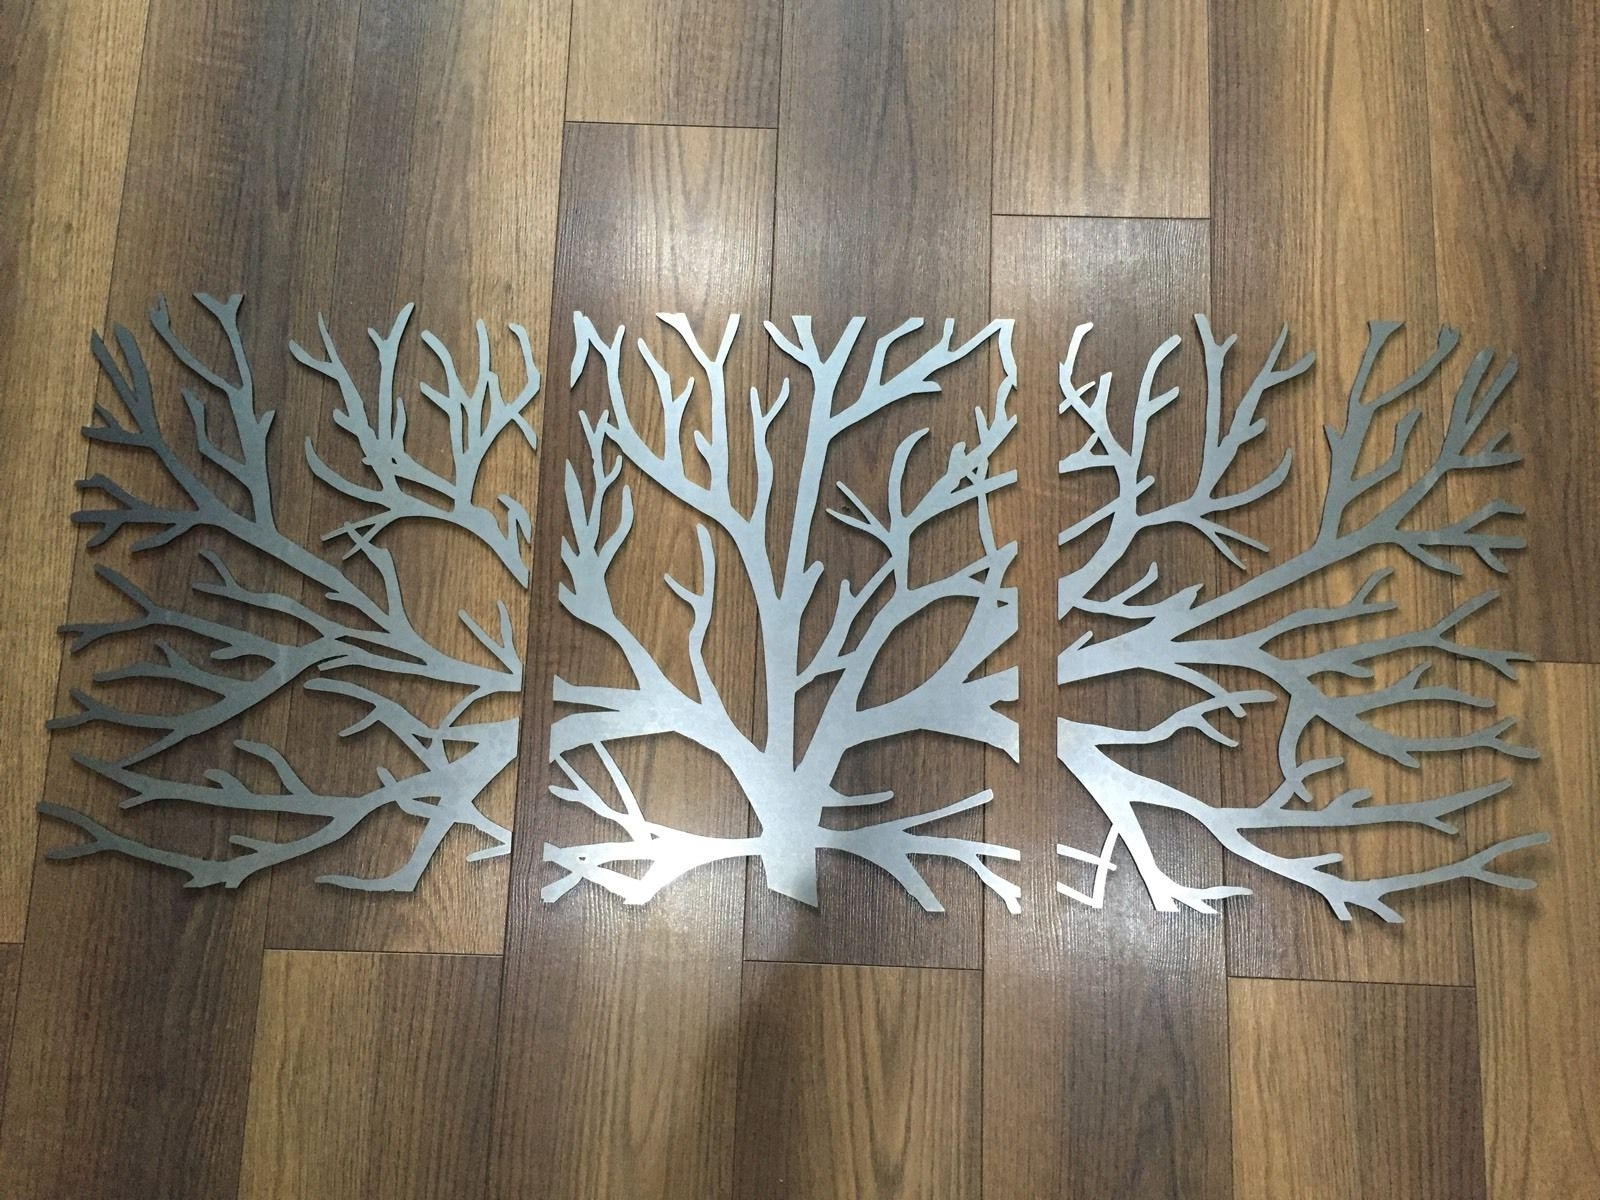 Wall Art Designs: Metal Wall Art Decor And Sculptures Wooden Metal Within 2017 Metal Tree Wall Art Sculpture (View 12 of 15)